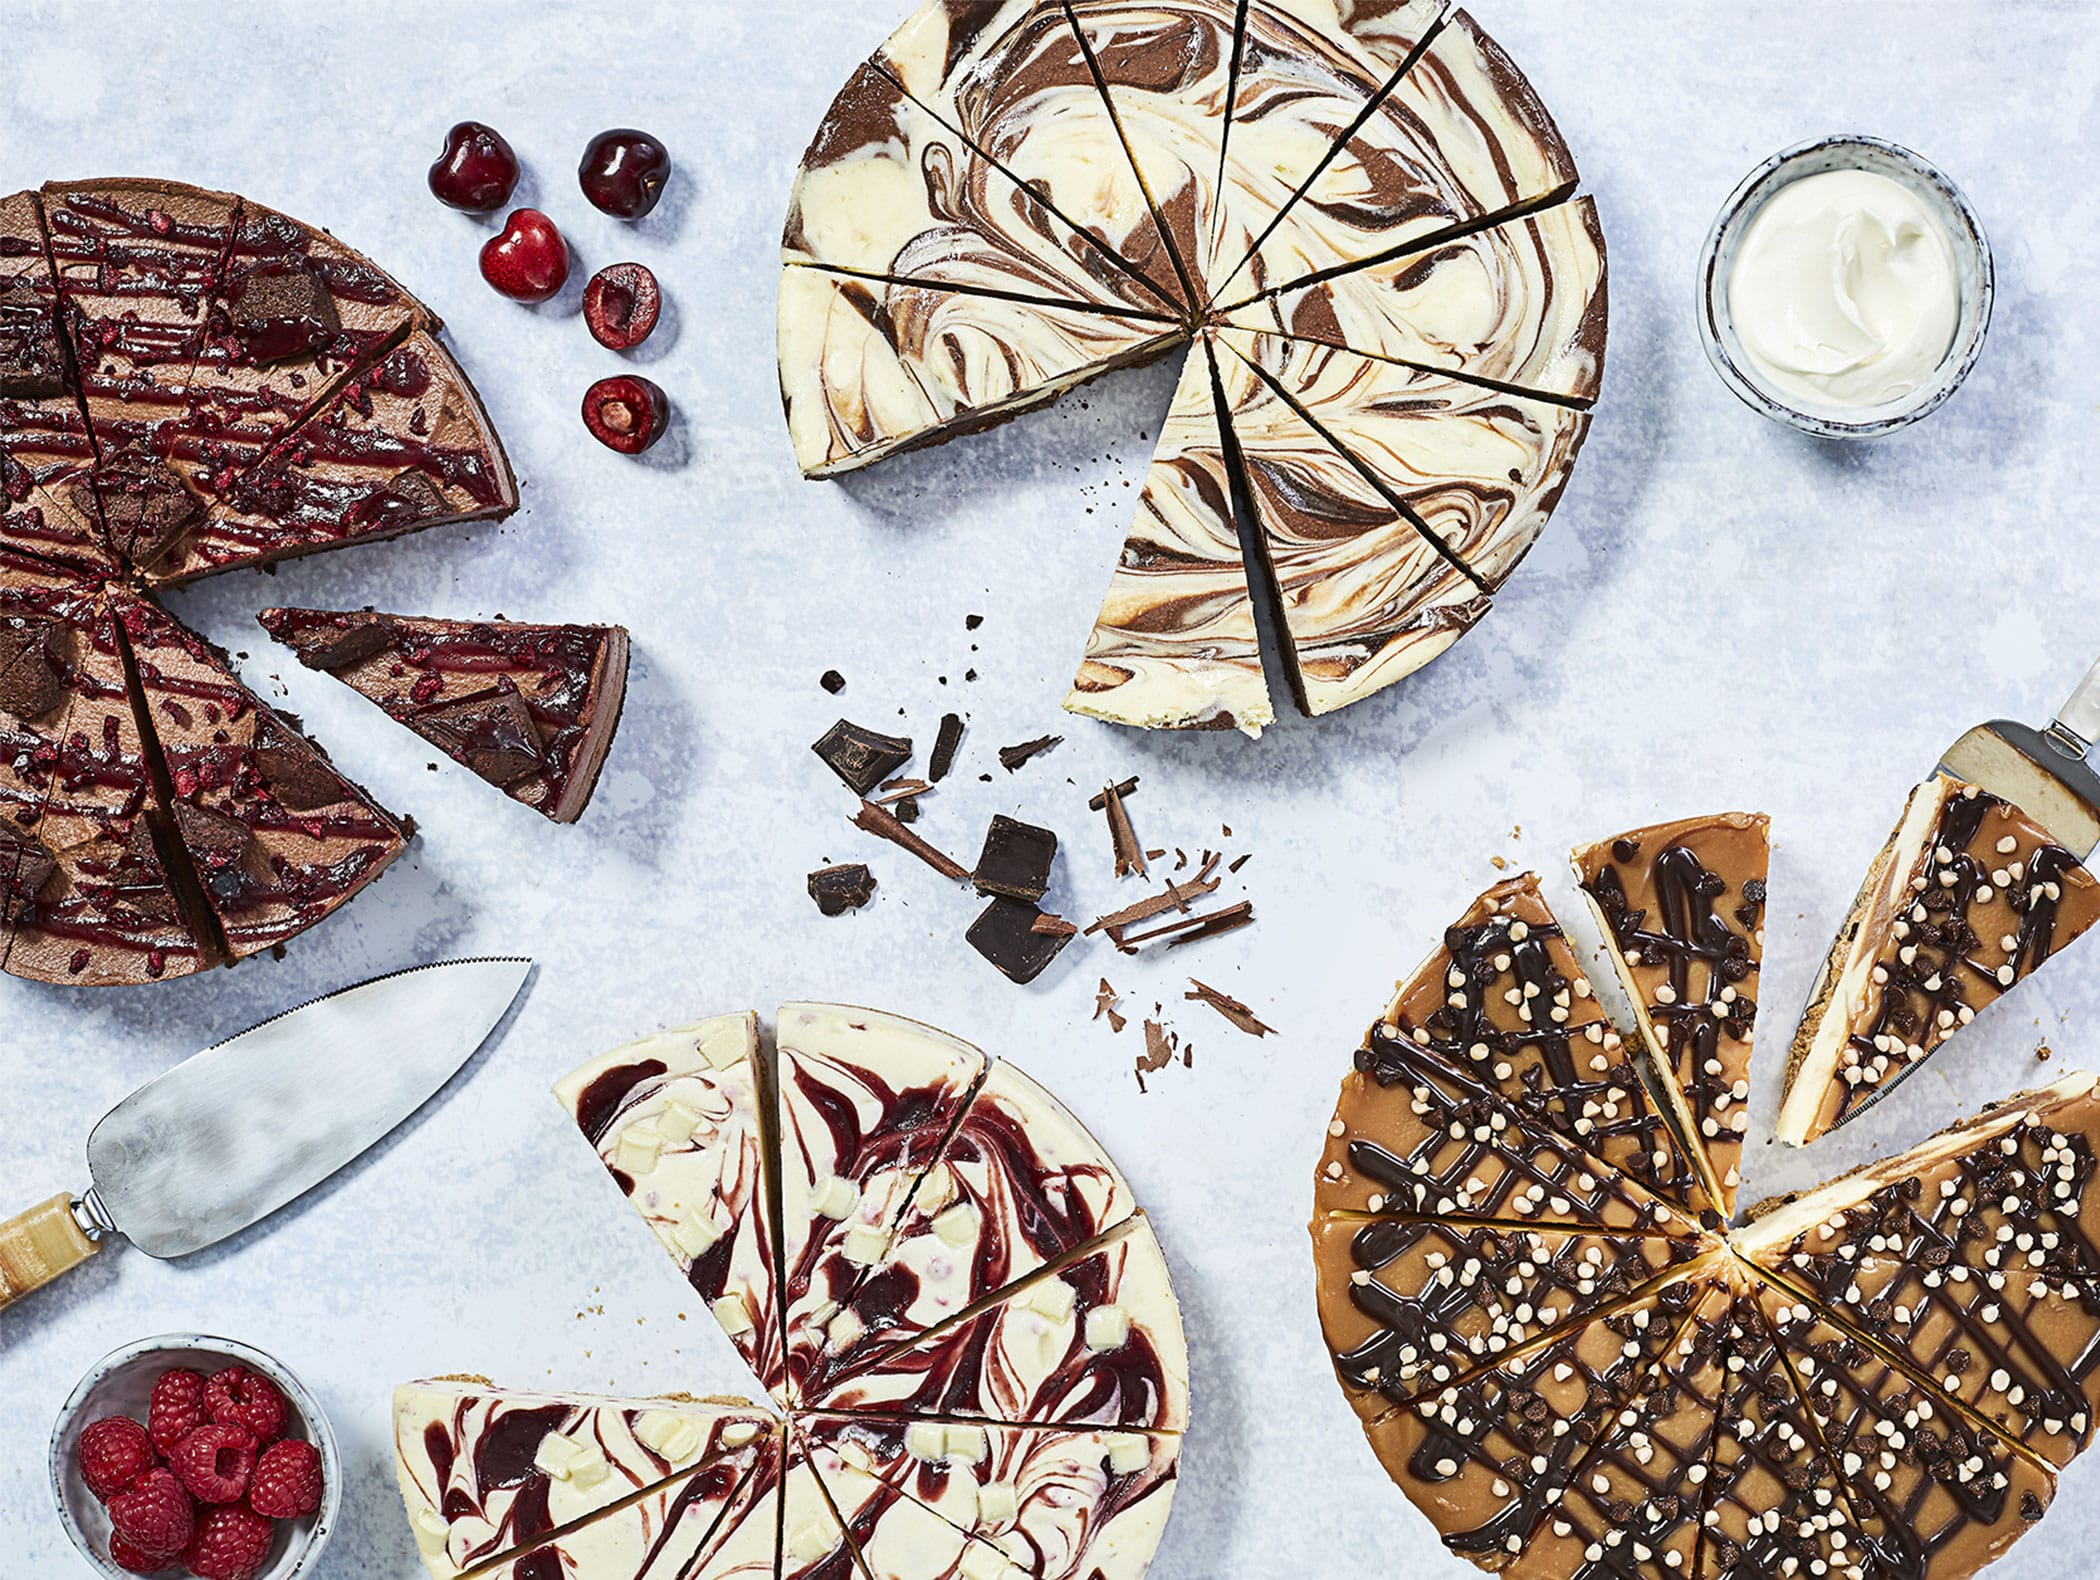 Cheesecake-group-shot-Large-banner-2100px-by-1580px